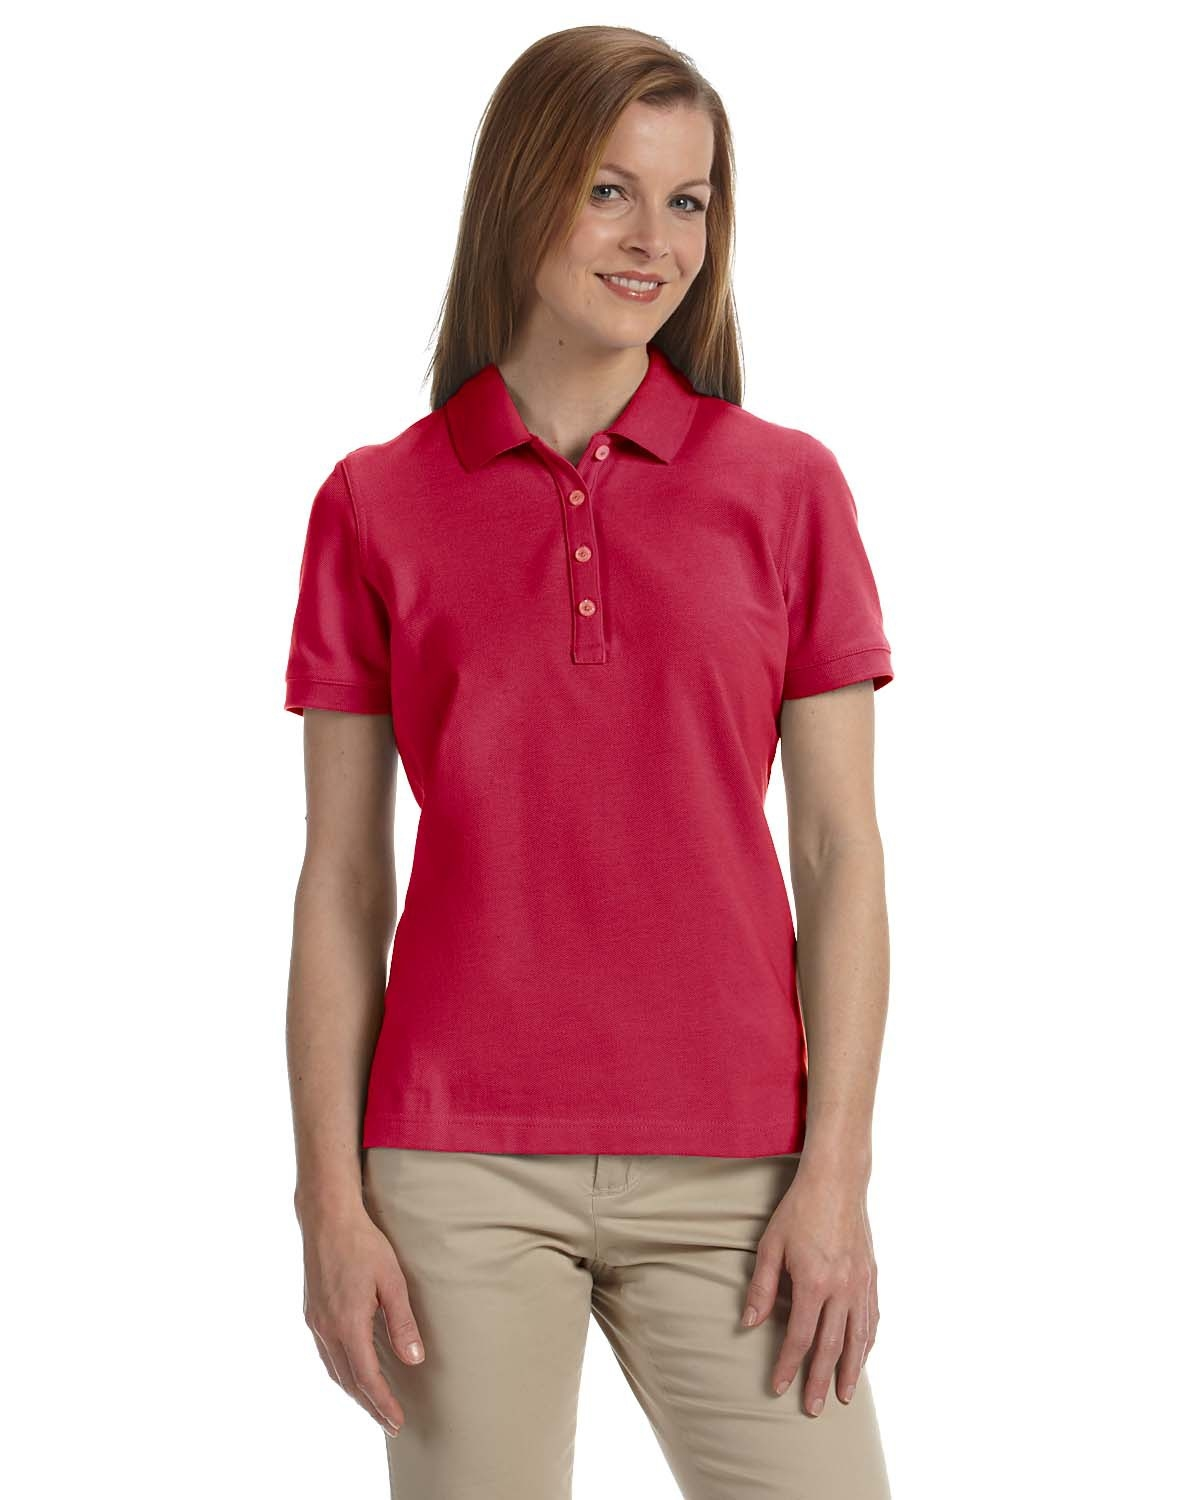 Ashworth Golf Ladies  Combed Cotton Pique Polo Shirts 1146C. Up to 25% off. 6bd608657